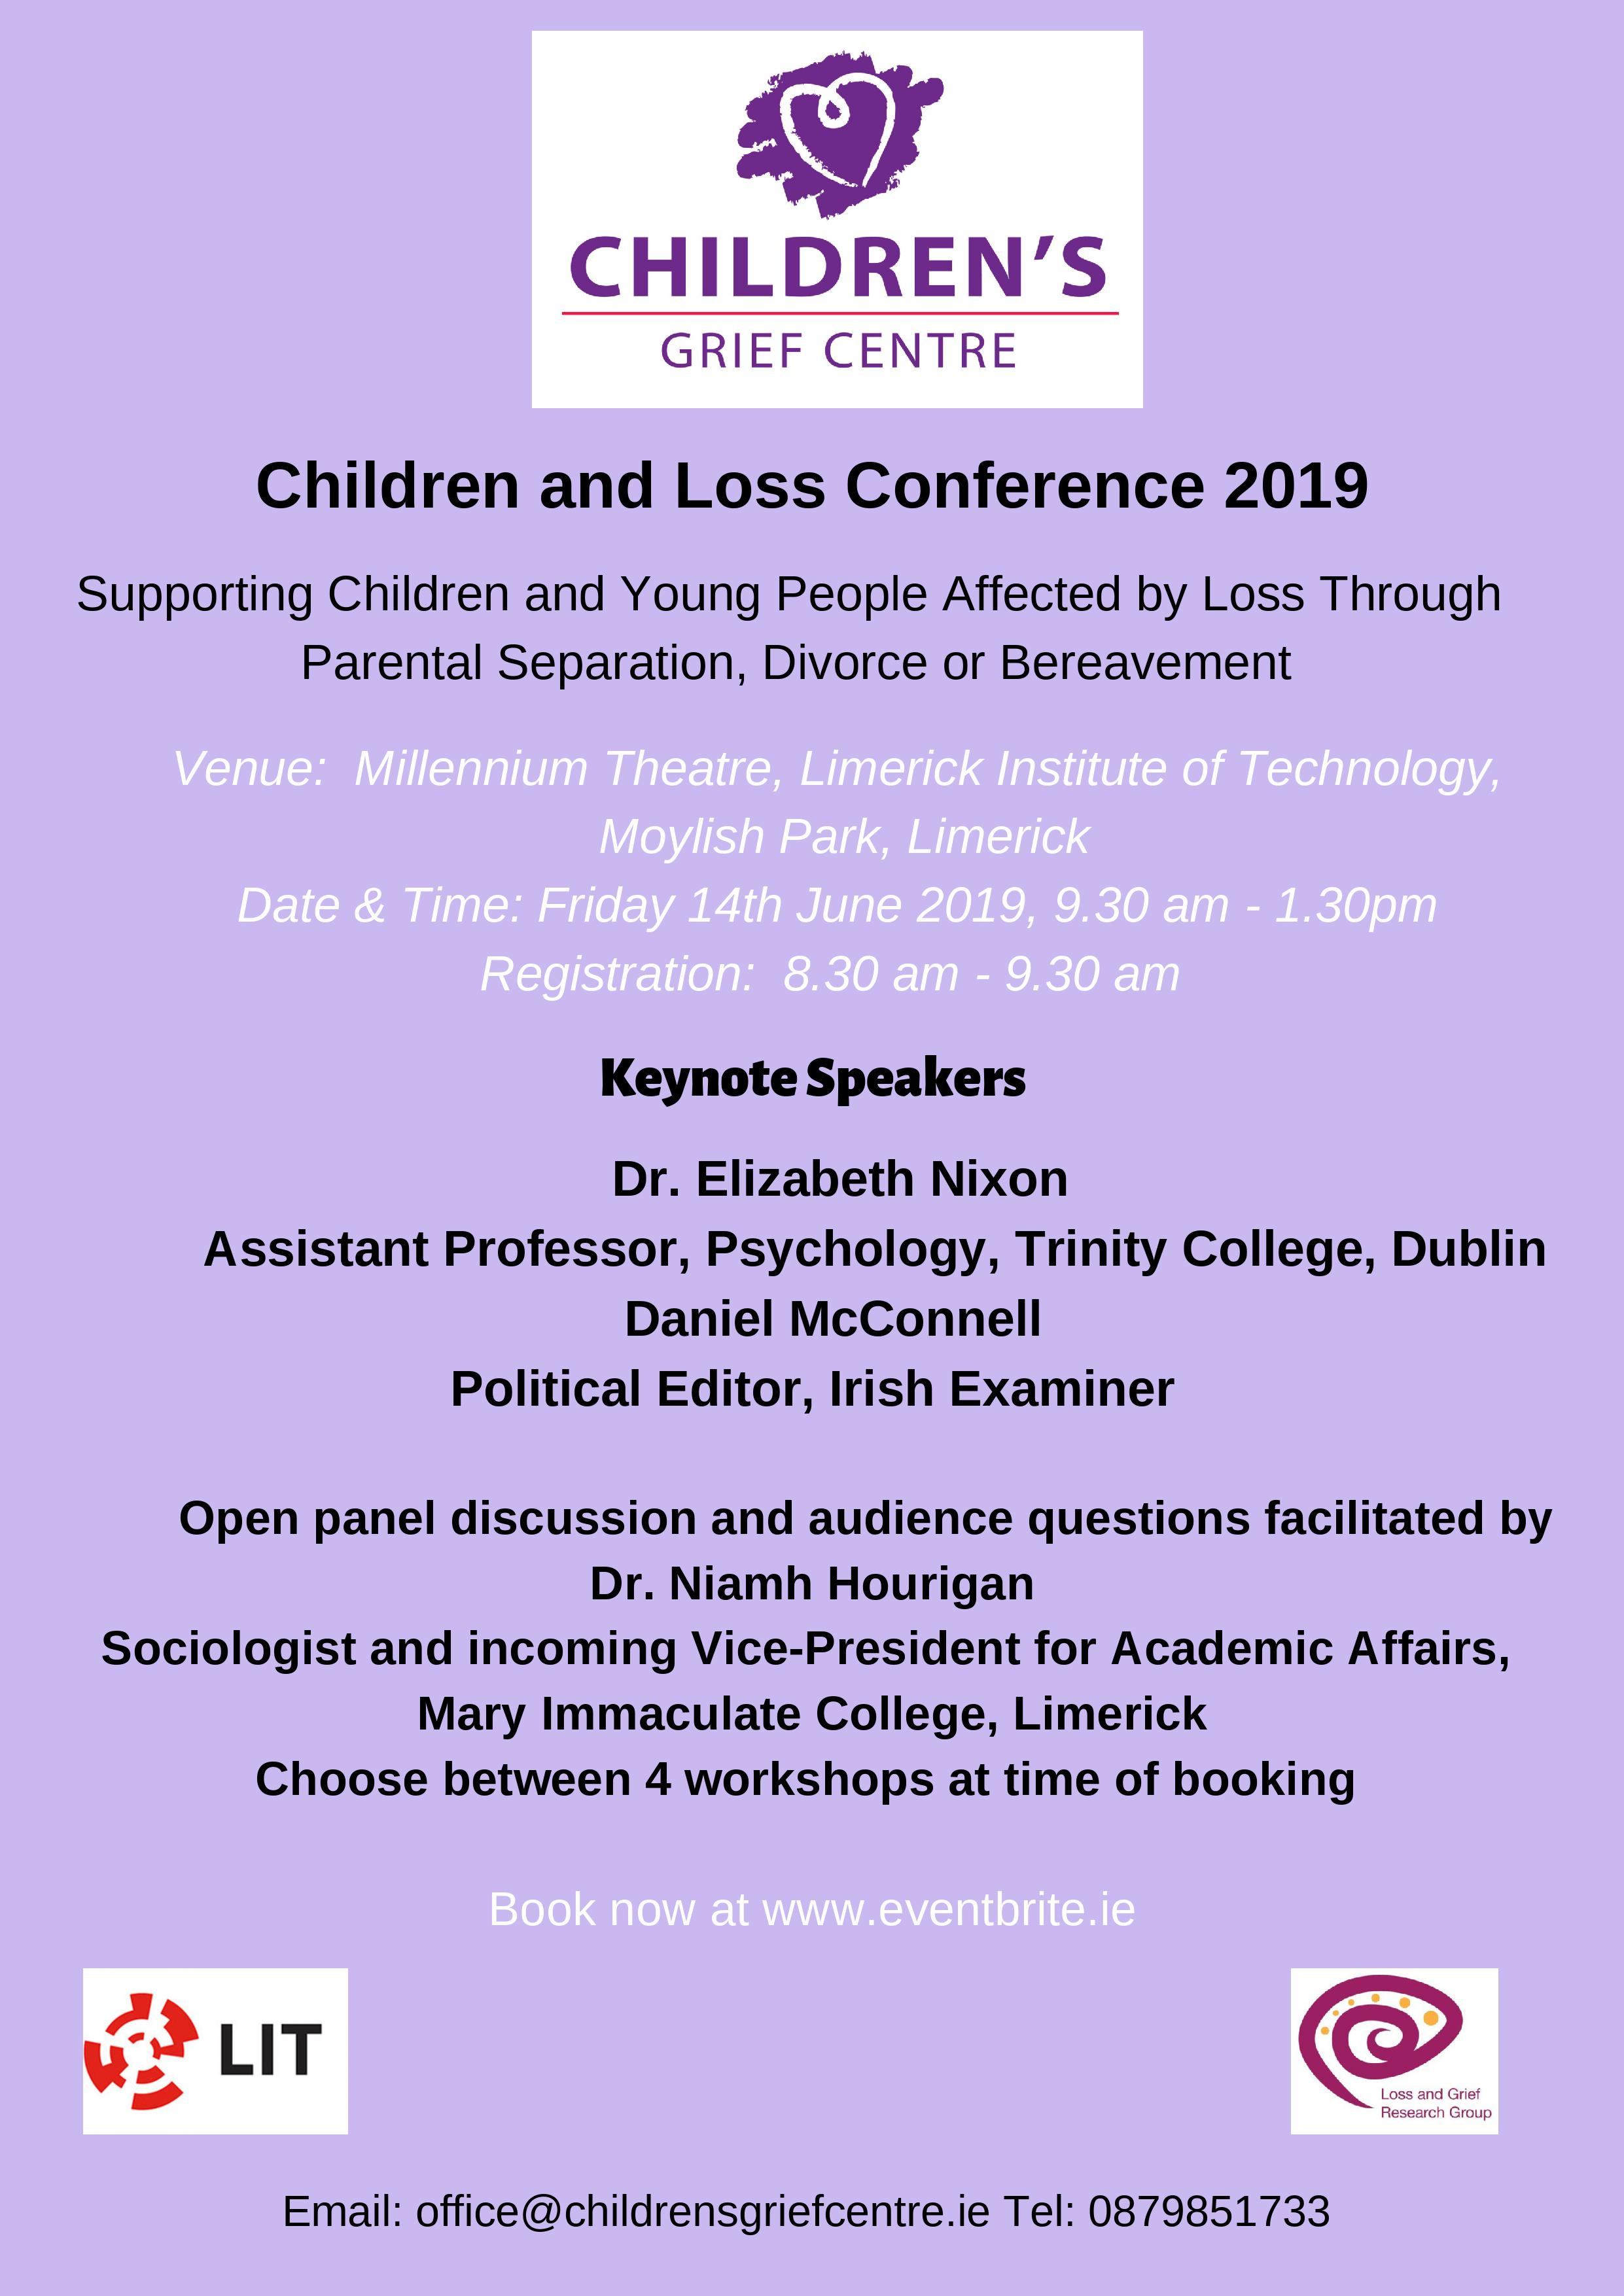 Children and Loss Conference